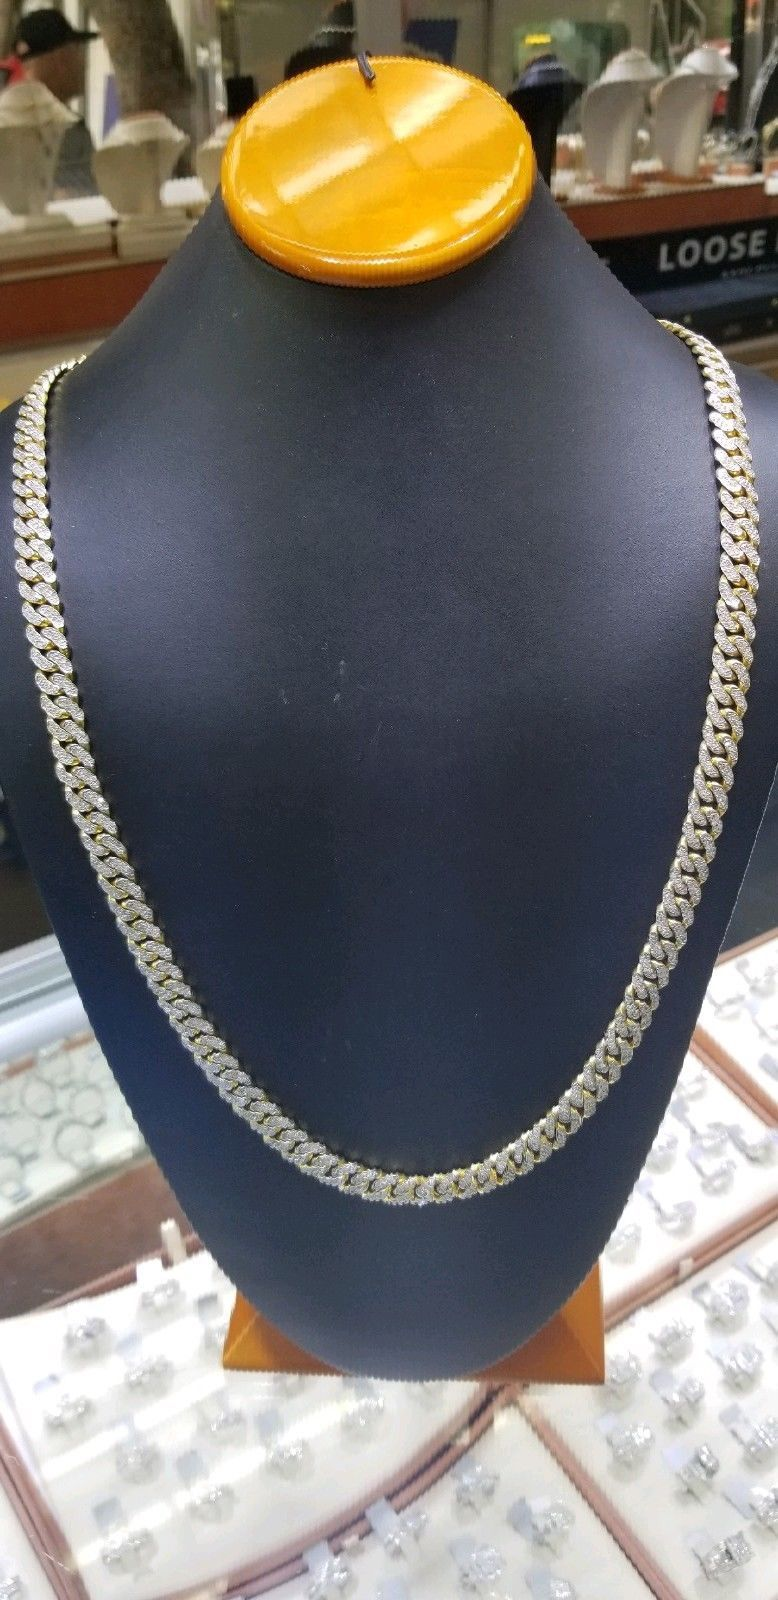 d38590f5020944 57. 57. Previous. Men's Real Diamond Miami Cuban Link Necklace Chain 10CT 9mm  10k Yellow Gold 30In · Men's Real ...